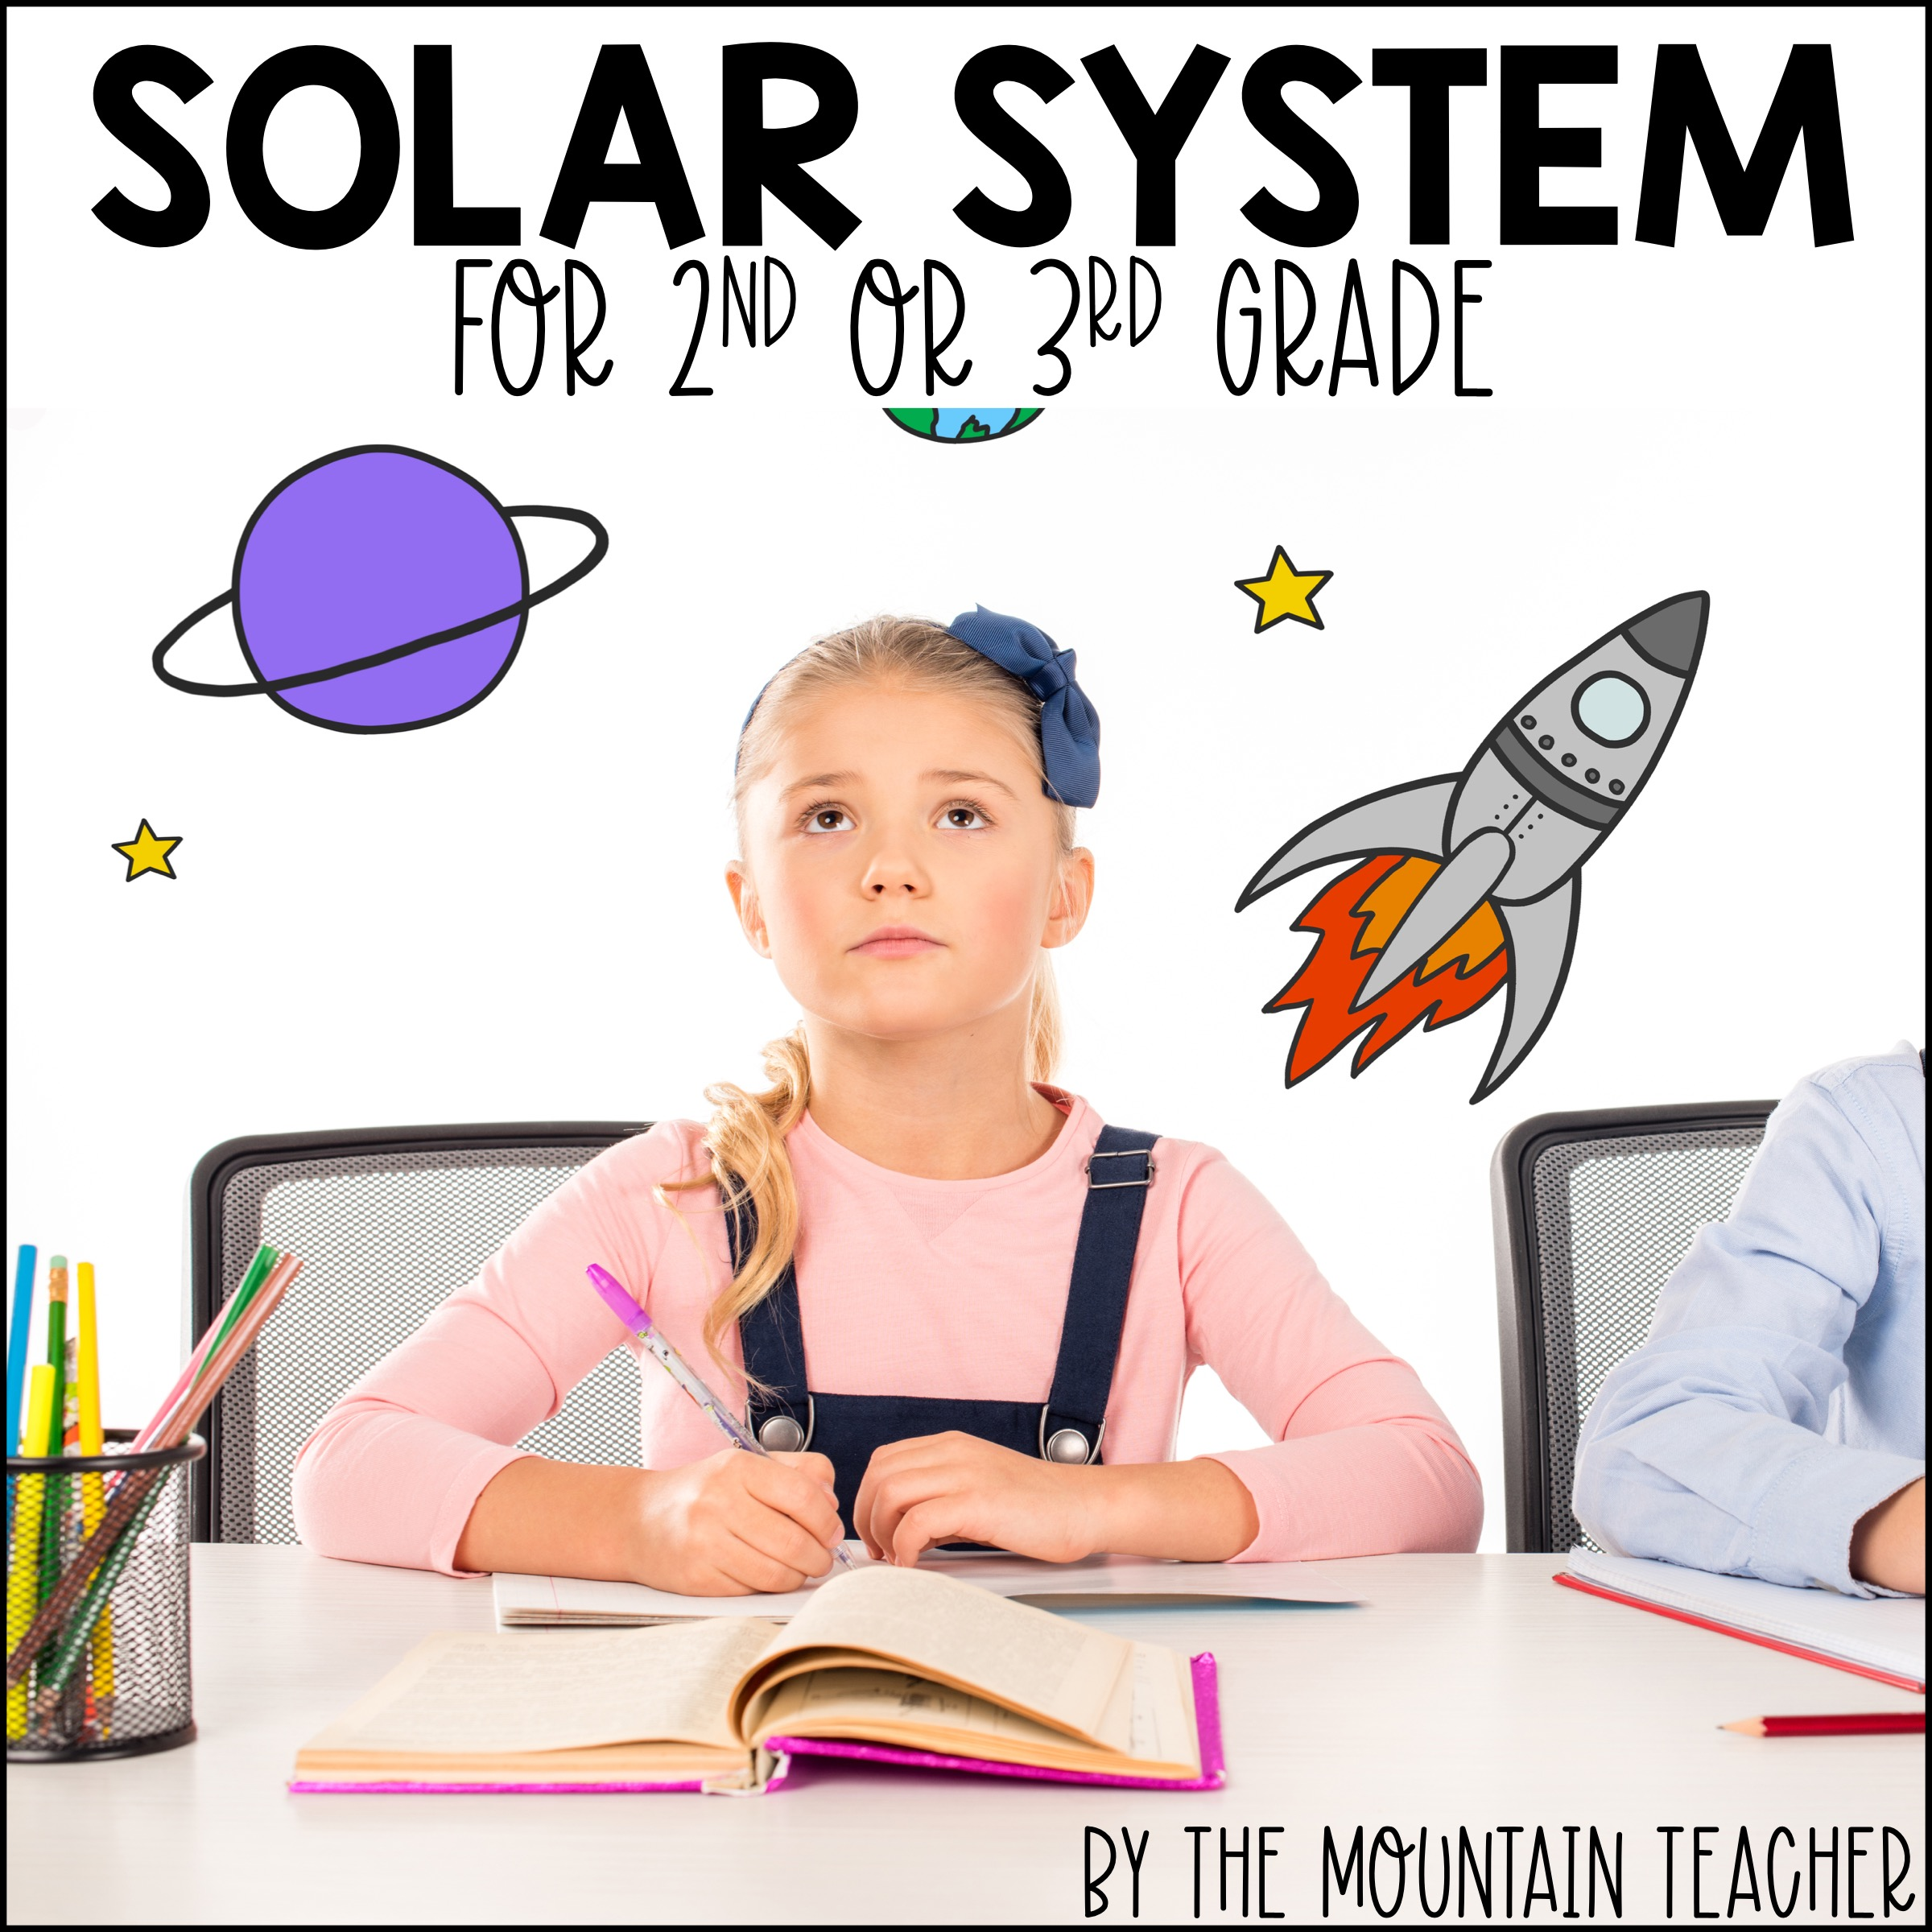 Solar System for 2nd or 3rd Grade Cover02